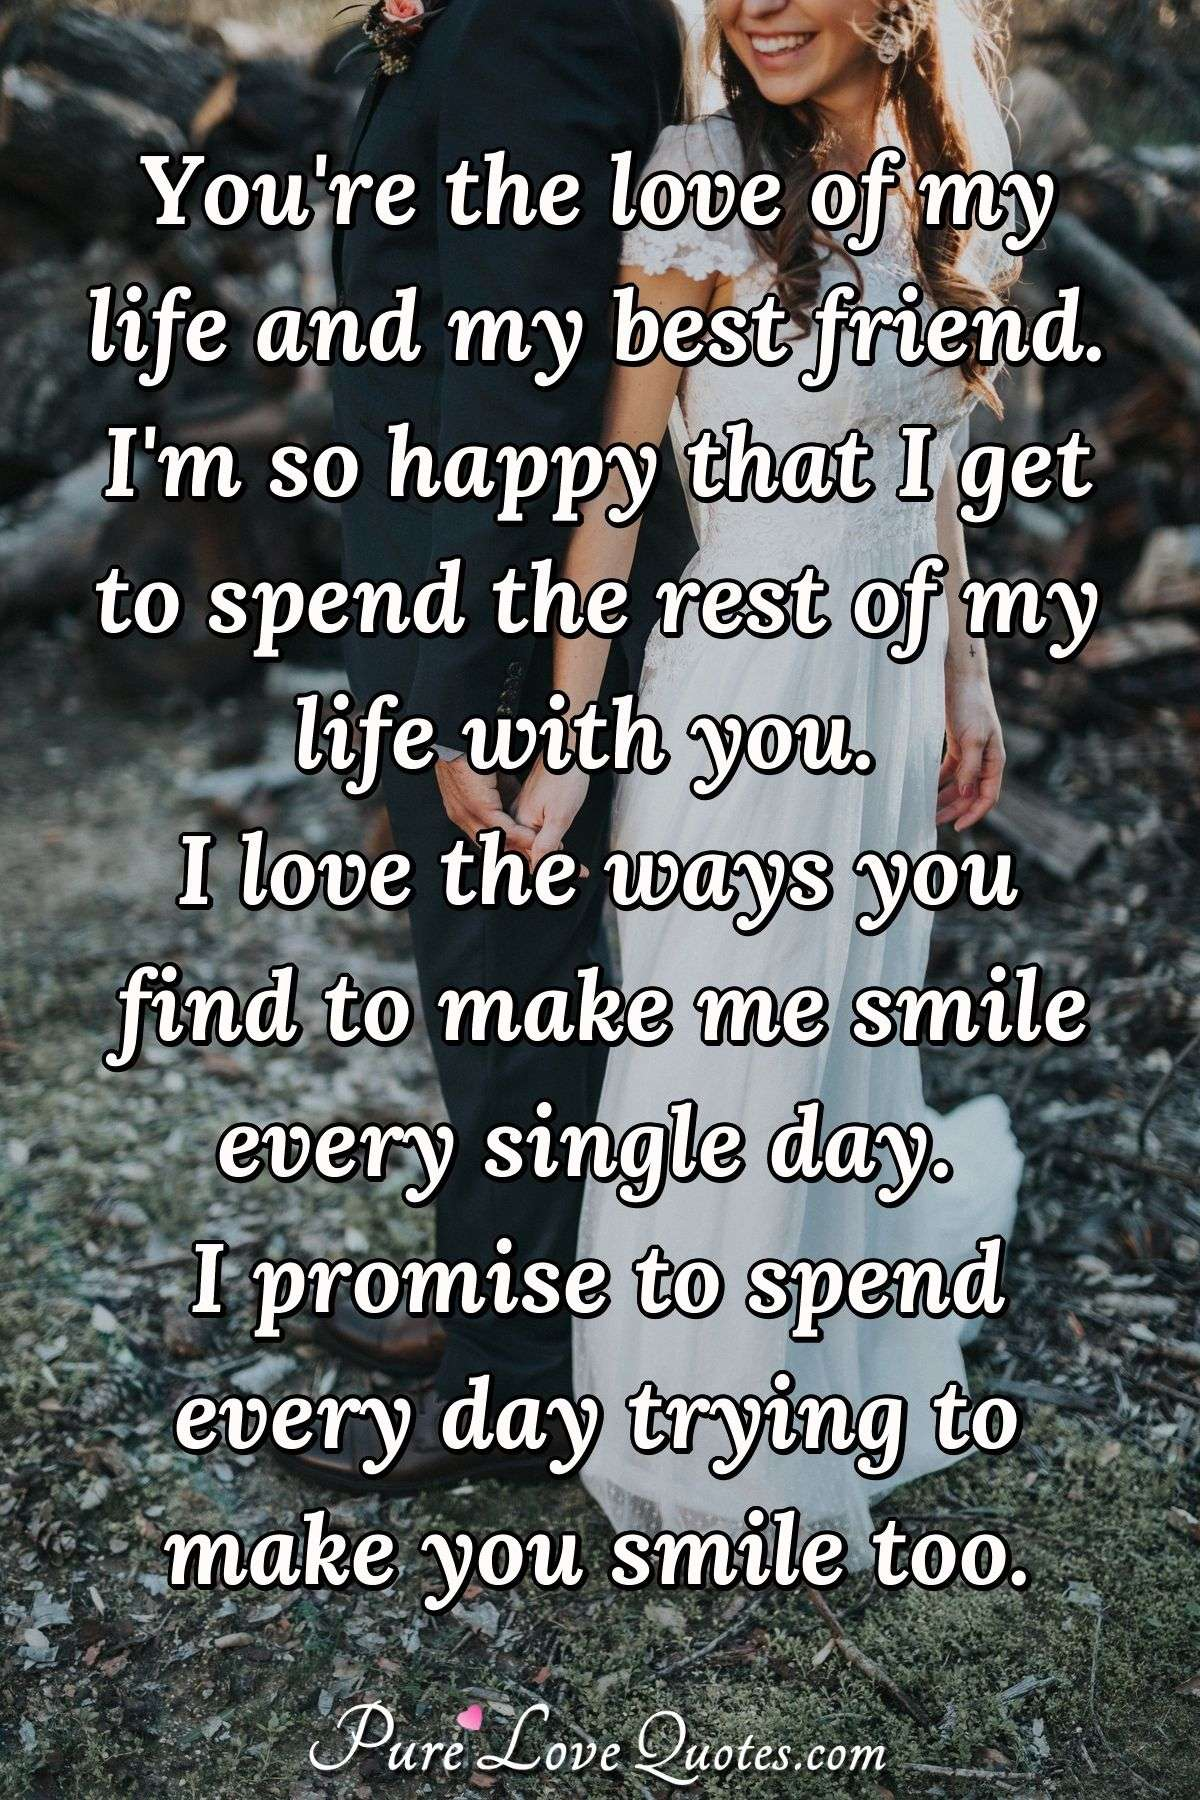 In Love With Best Friend Quote : friend, quote, You're, Friend., Happy, Spend..., PureLoveQuotes